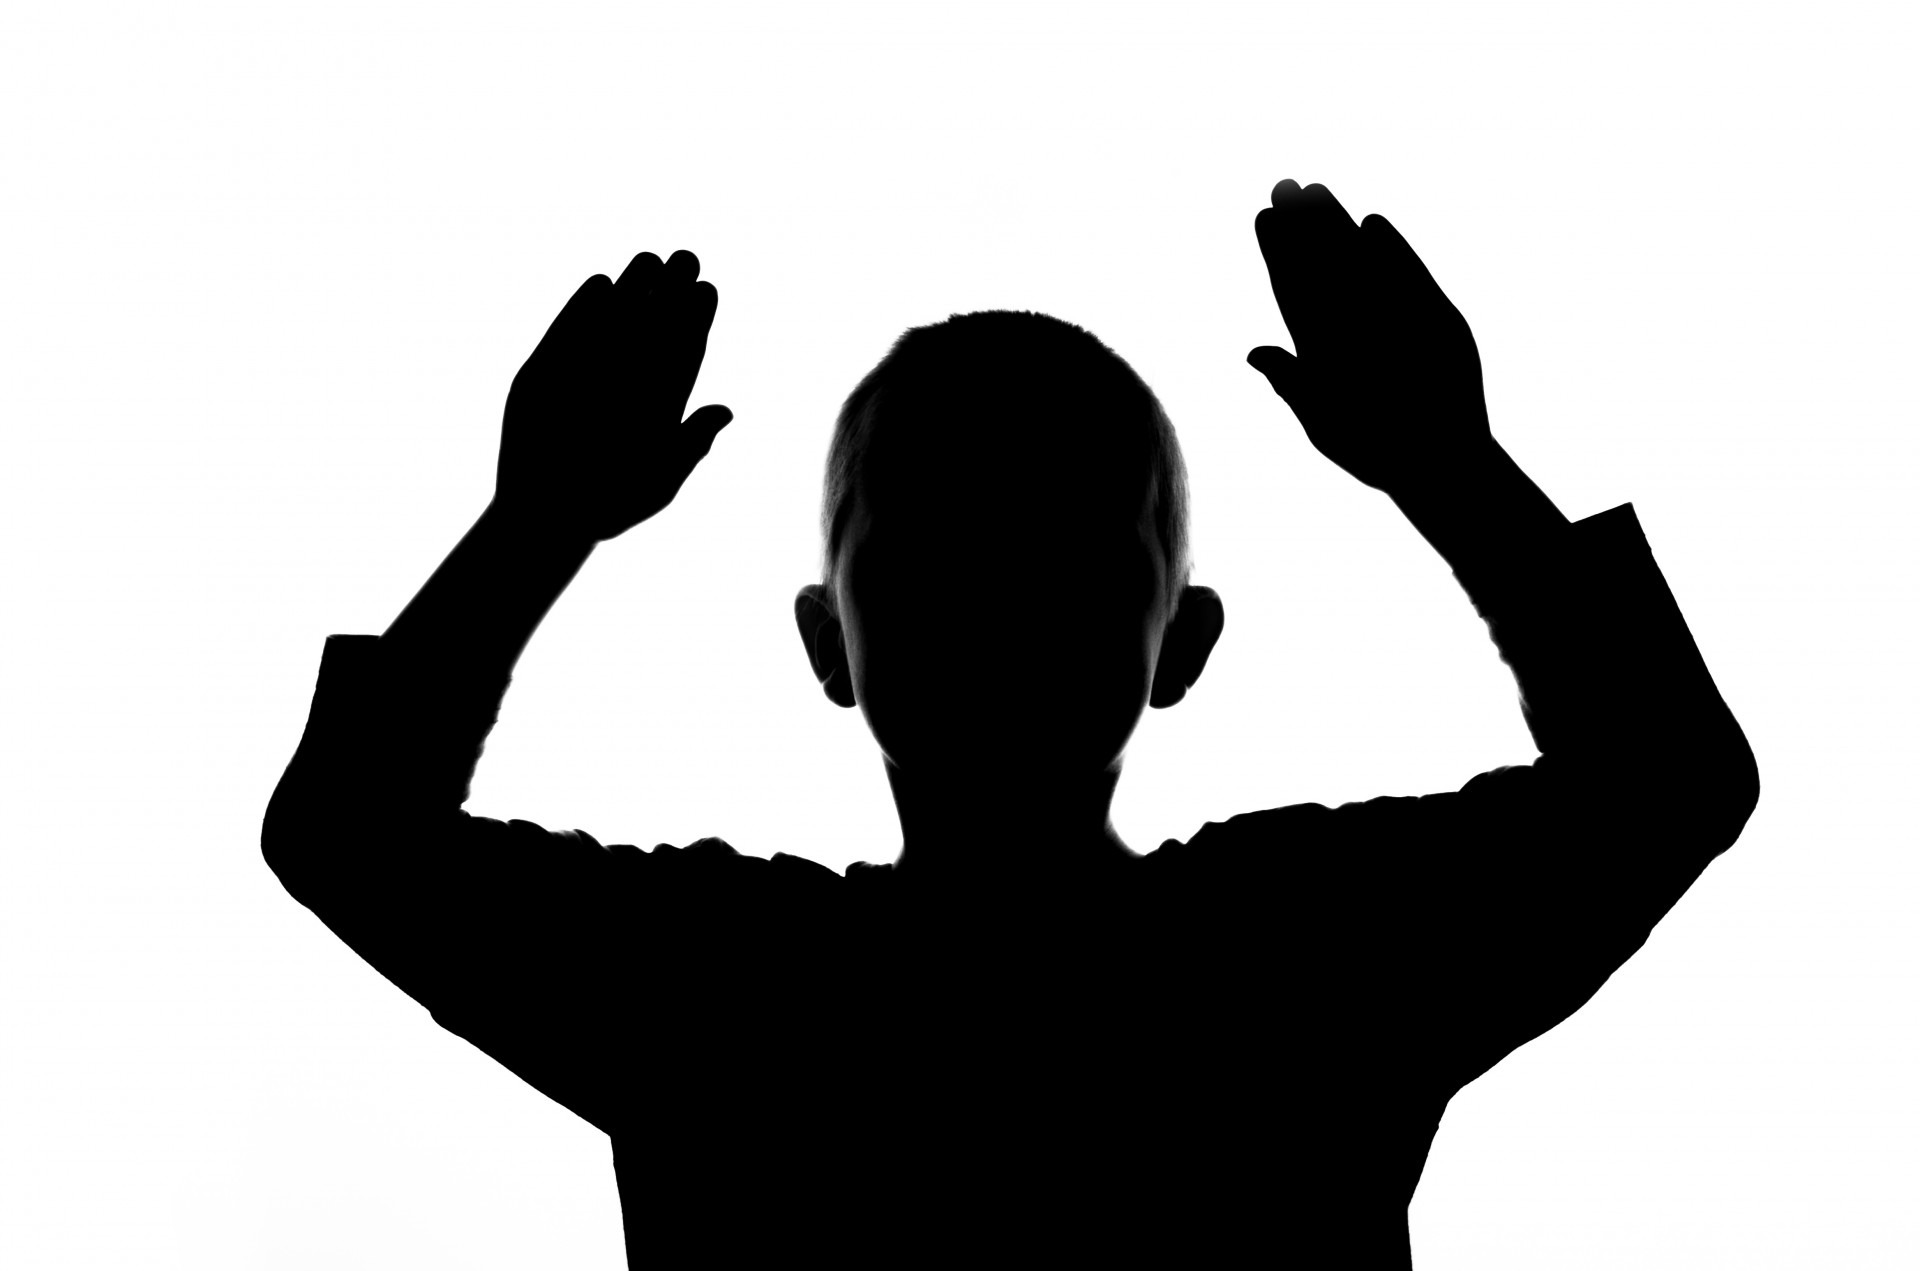 1920x1271 Free Images Hand, Silhouette, Black And White, People, Boy